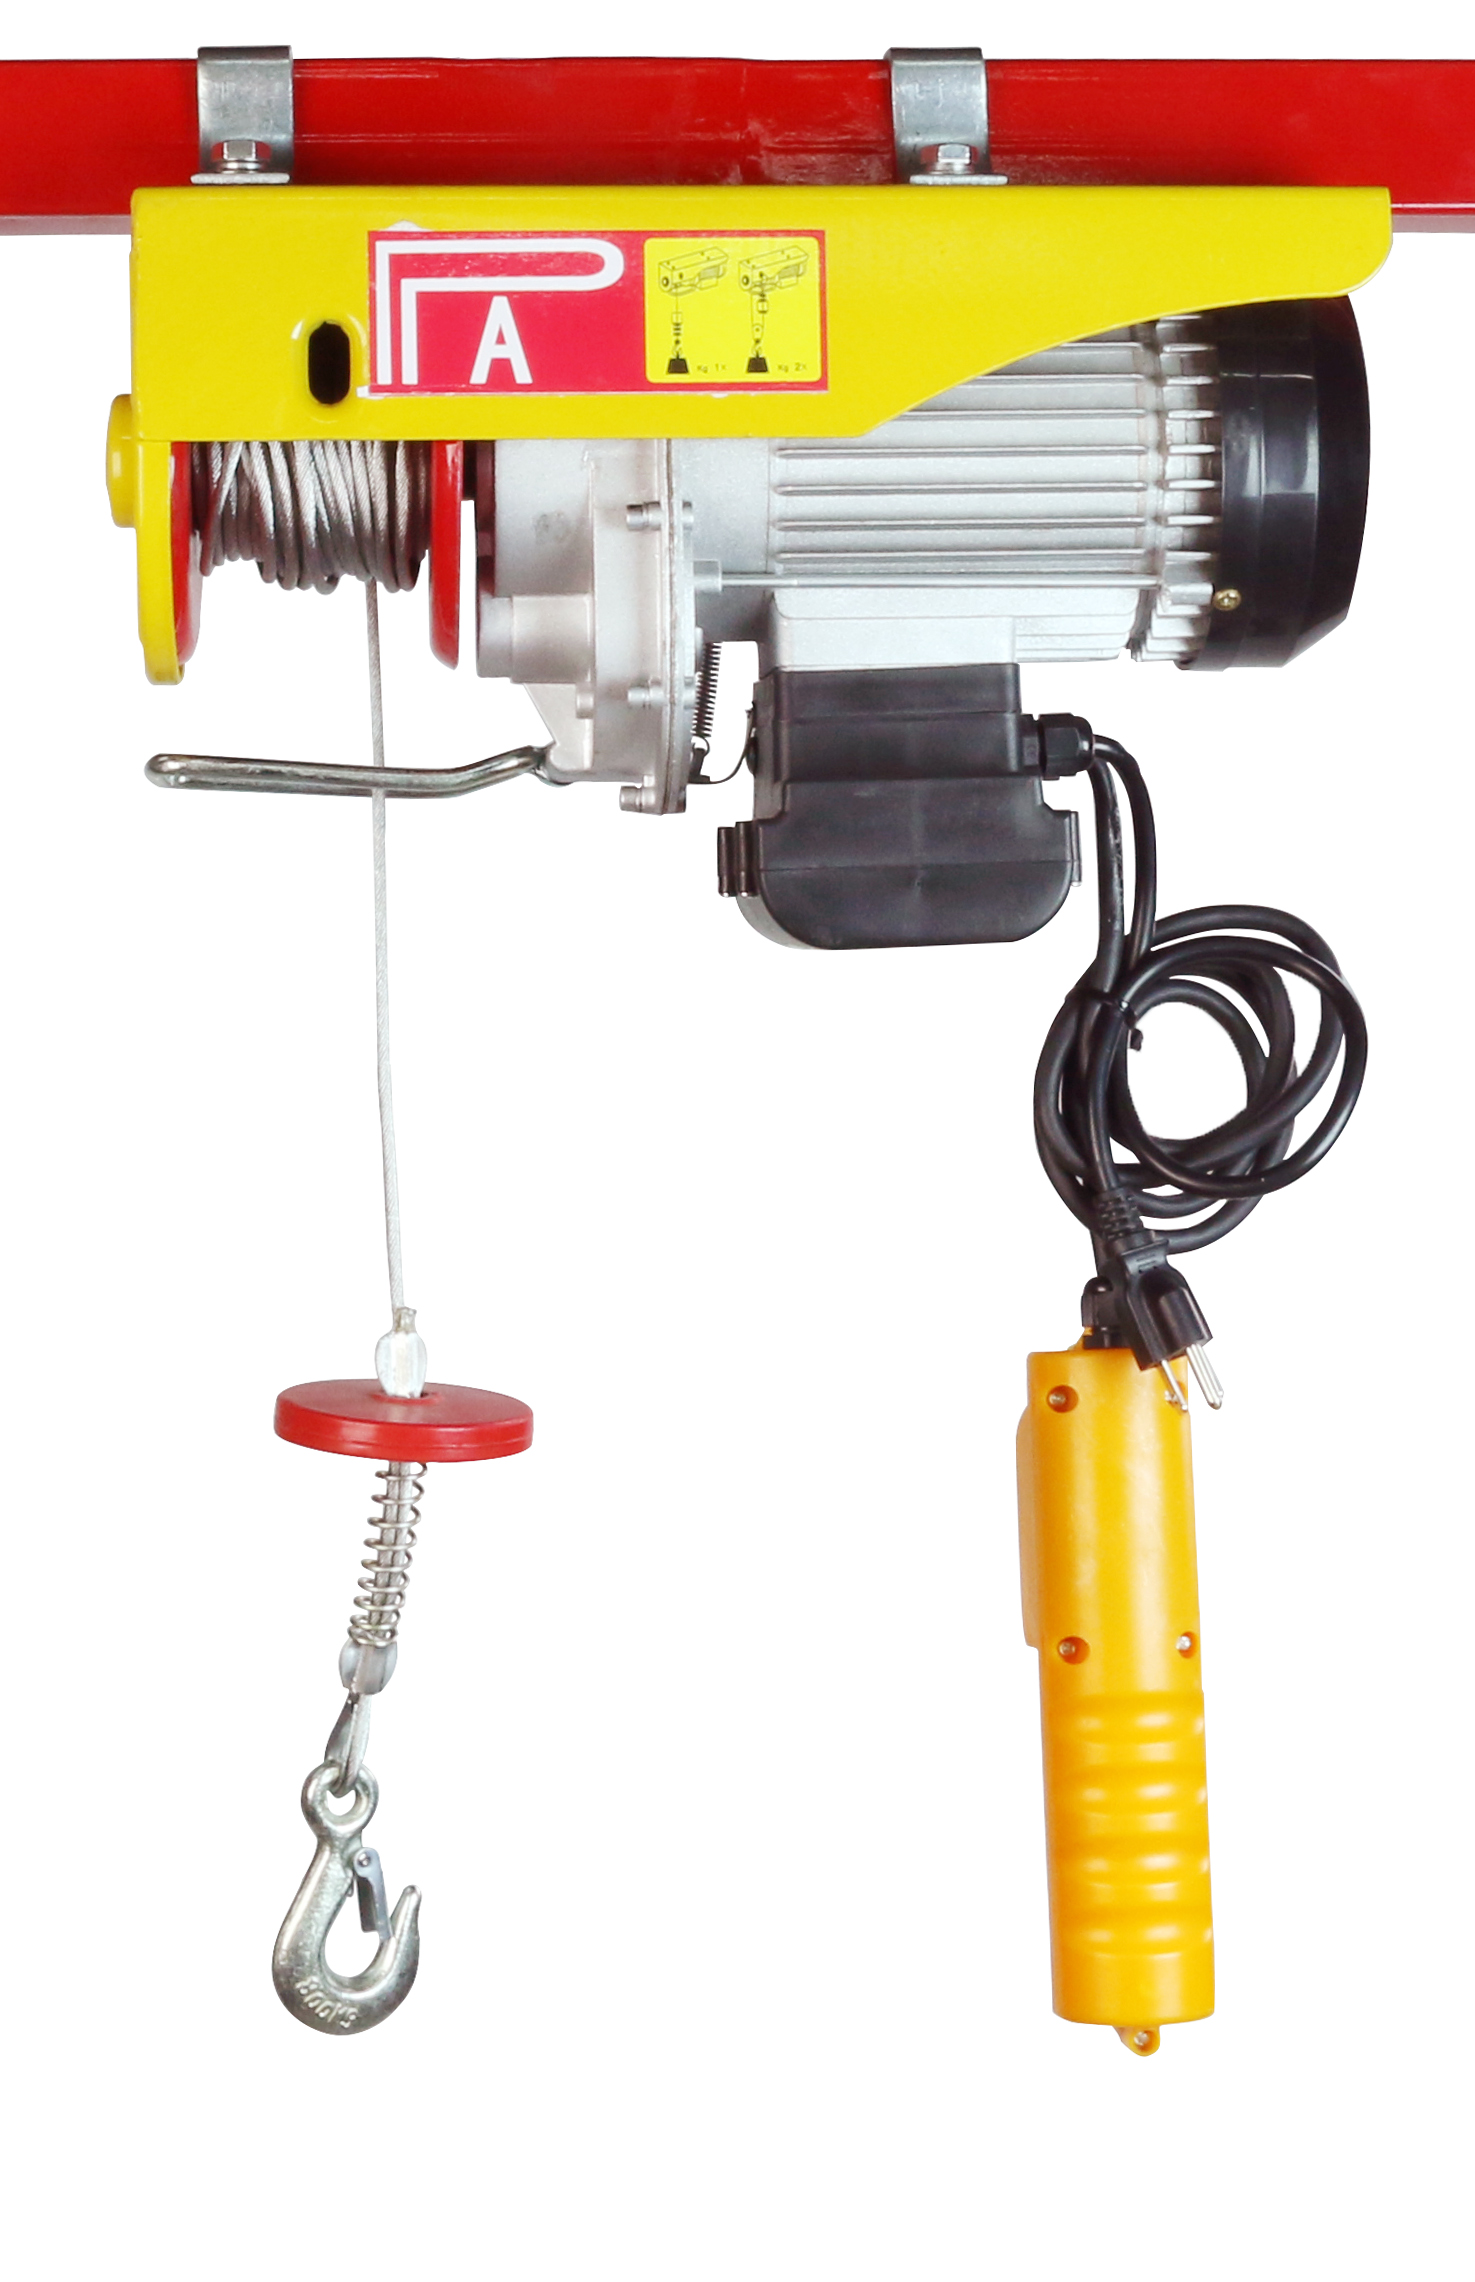 Overhead Electric Cable : Sdt lb electric wire cable hoist remote garage shop